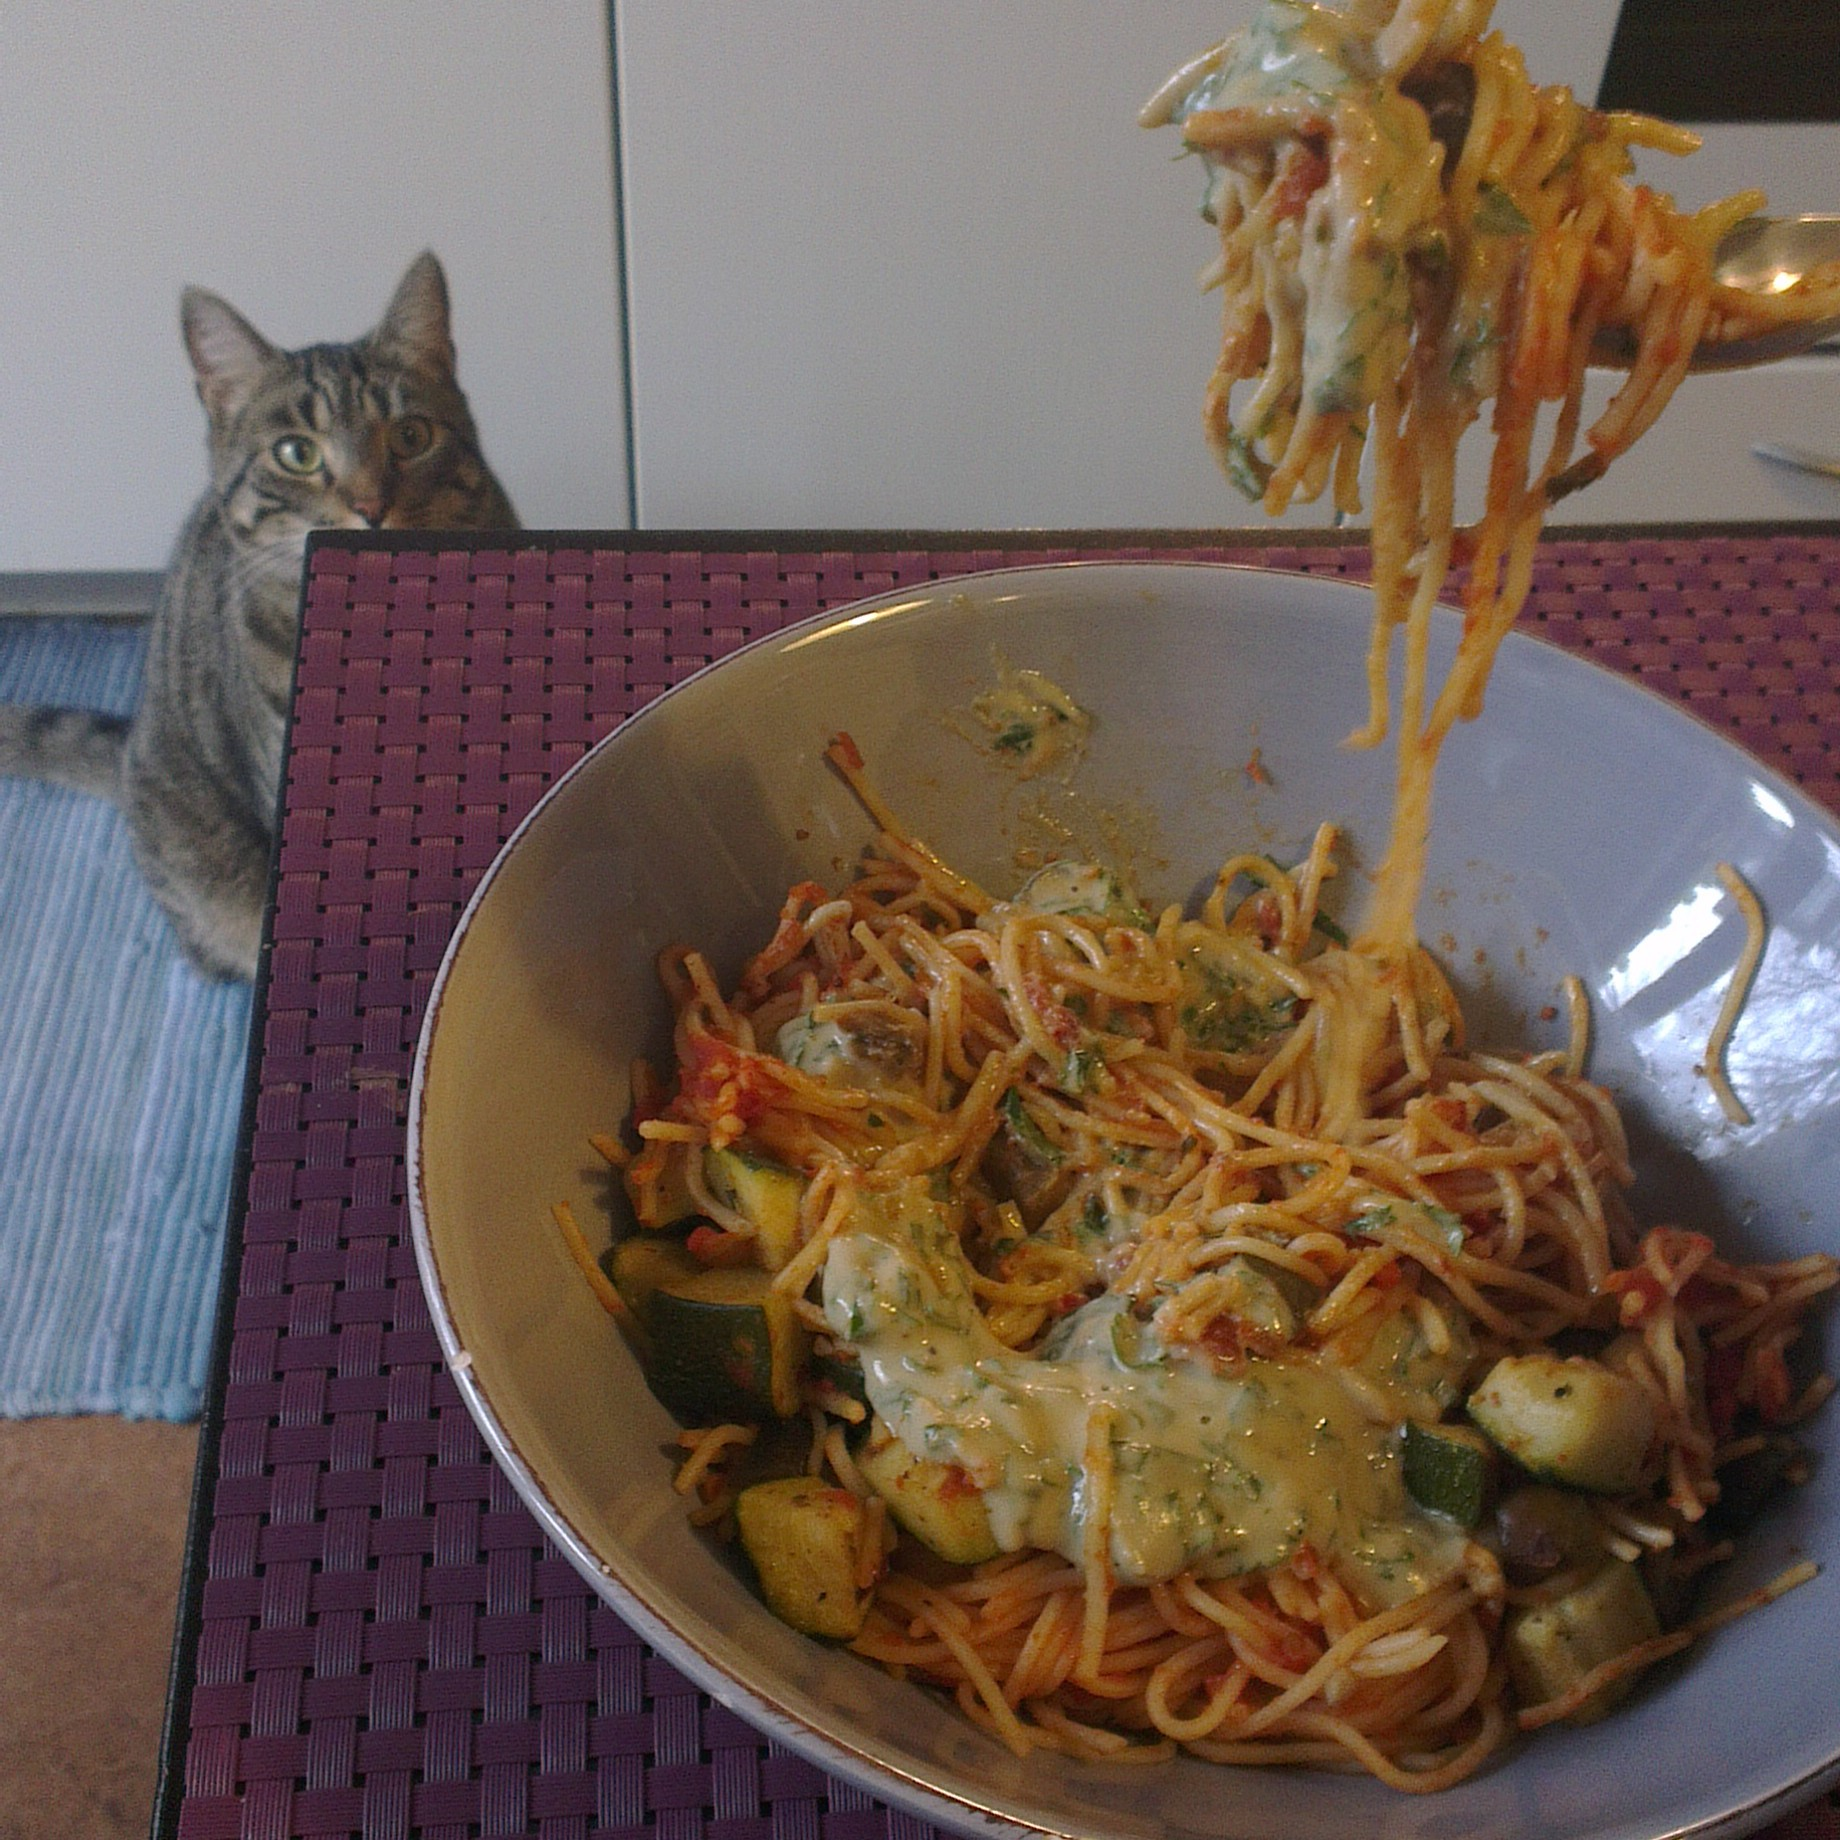 Yesterday's veggie pasta upgraded with 2 spoons of tahini and a cat